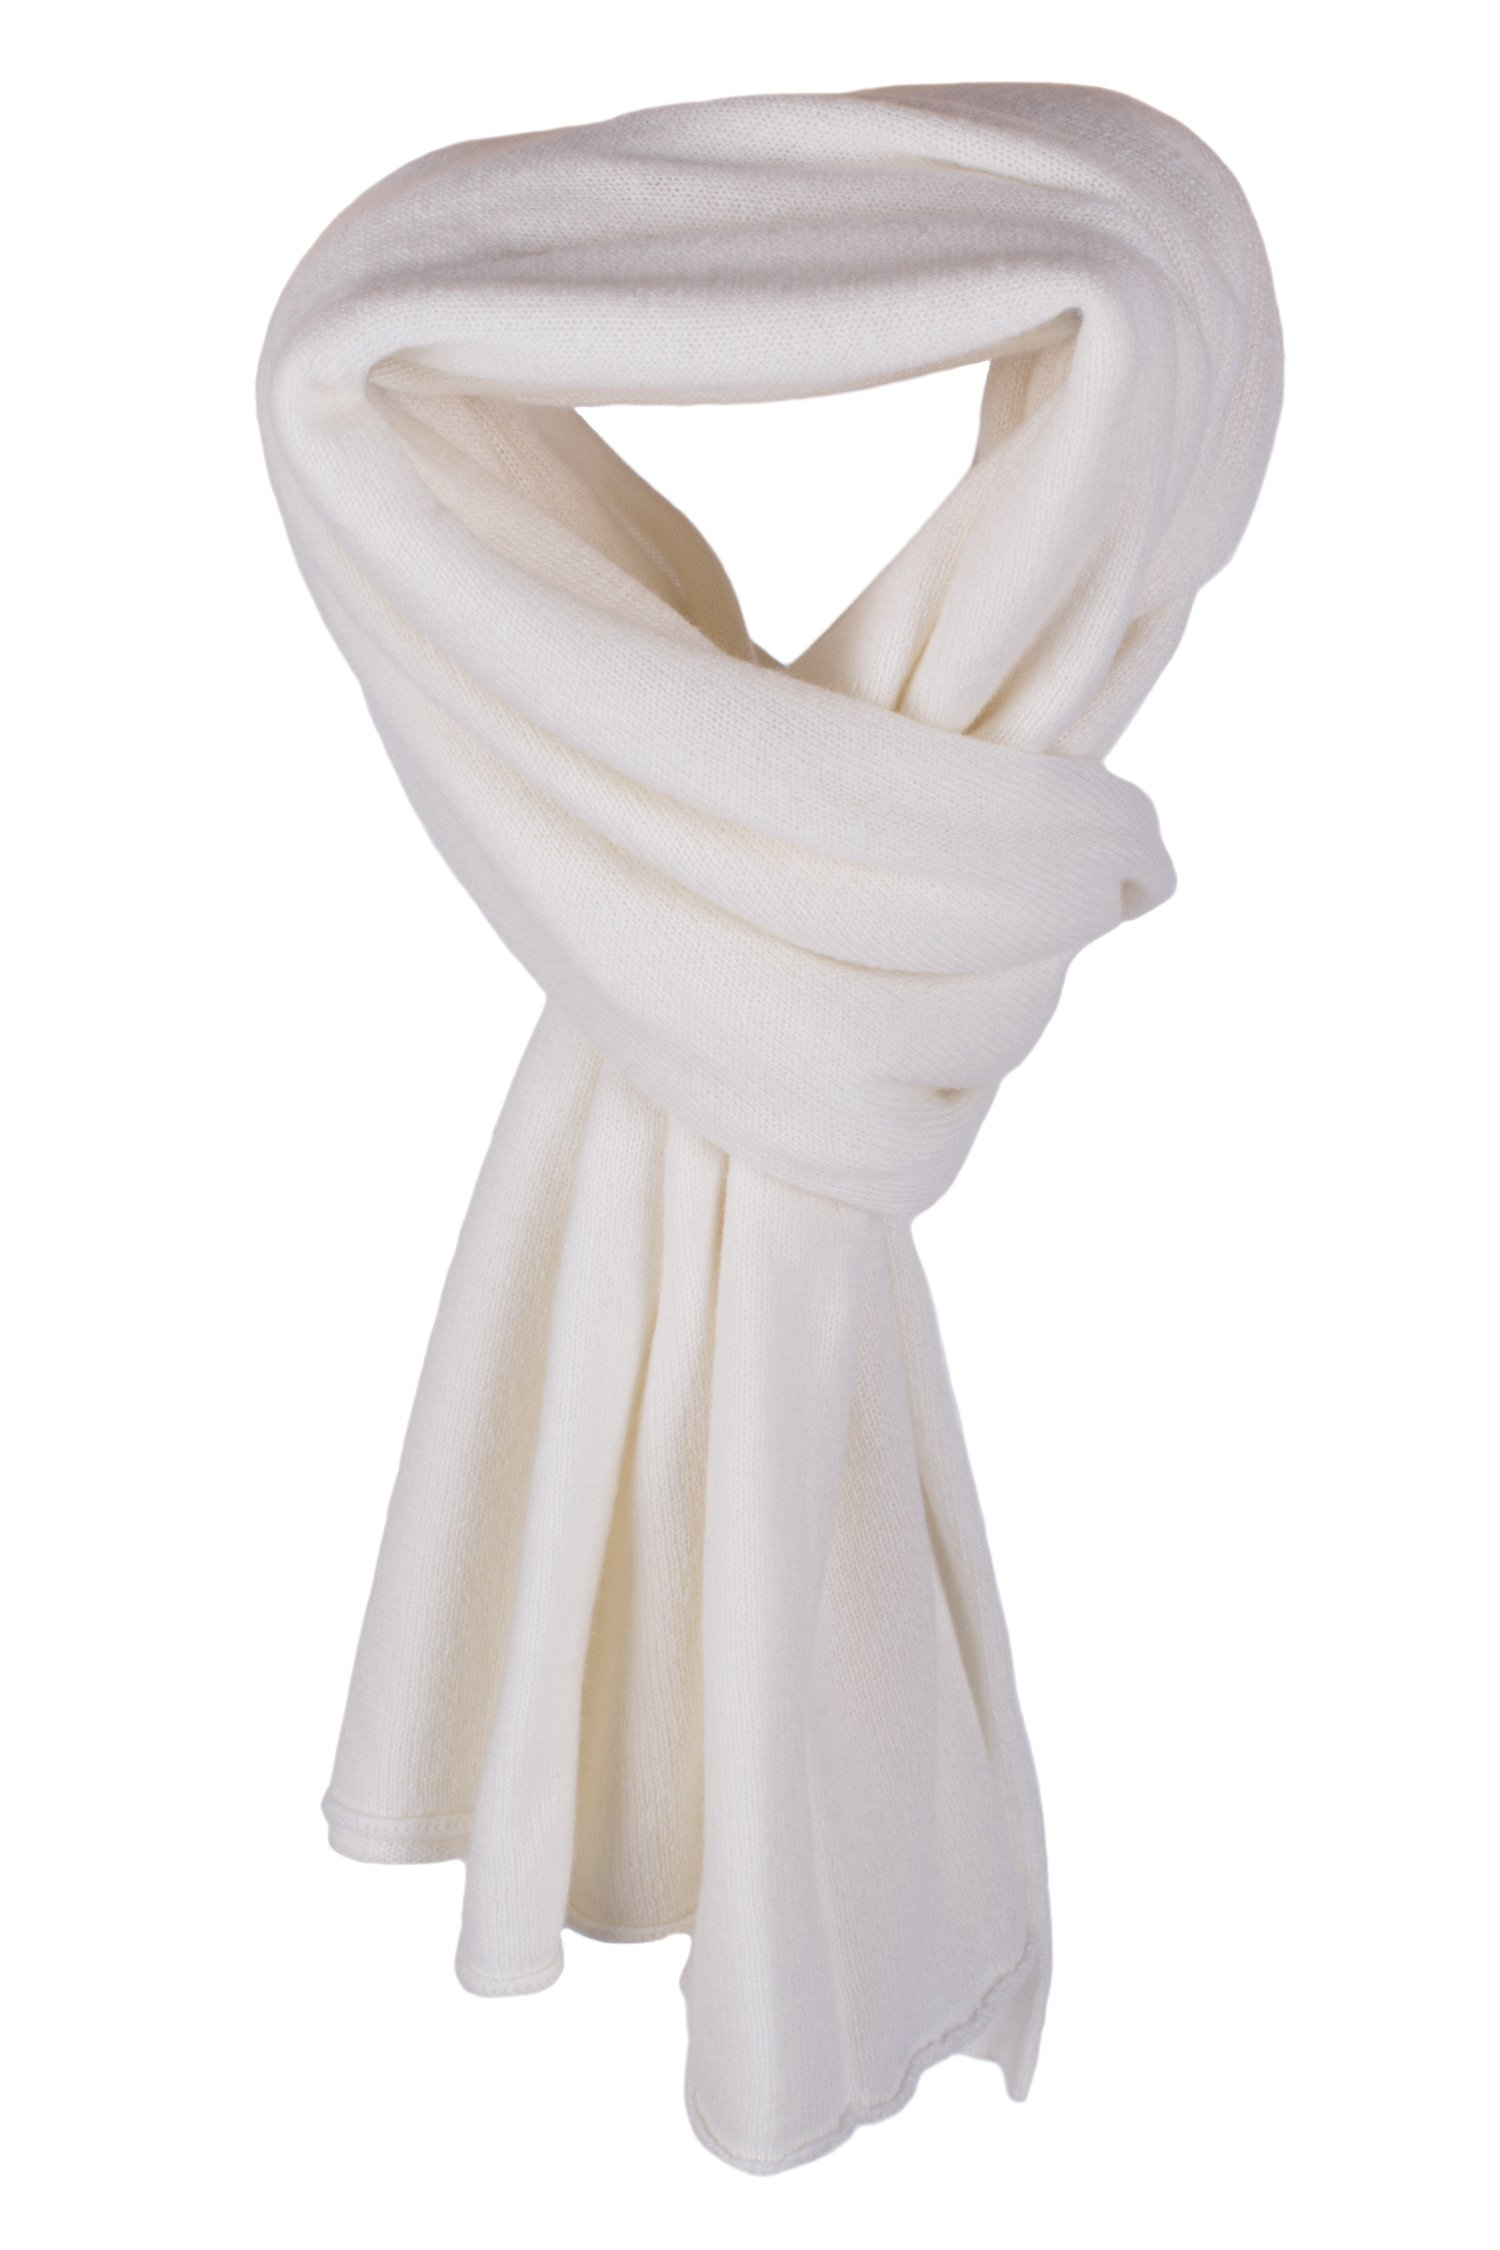 Women's 100% Cashmere Wrap Scarf - White - hand made in Scotland by Love Cashmere RRP $350